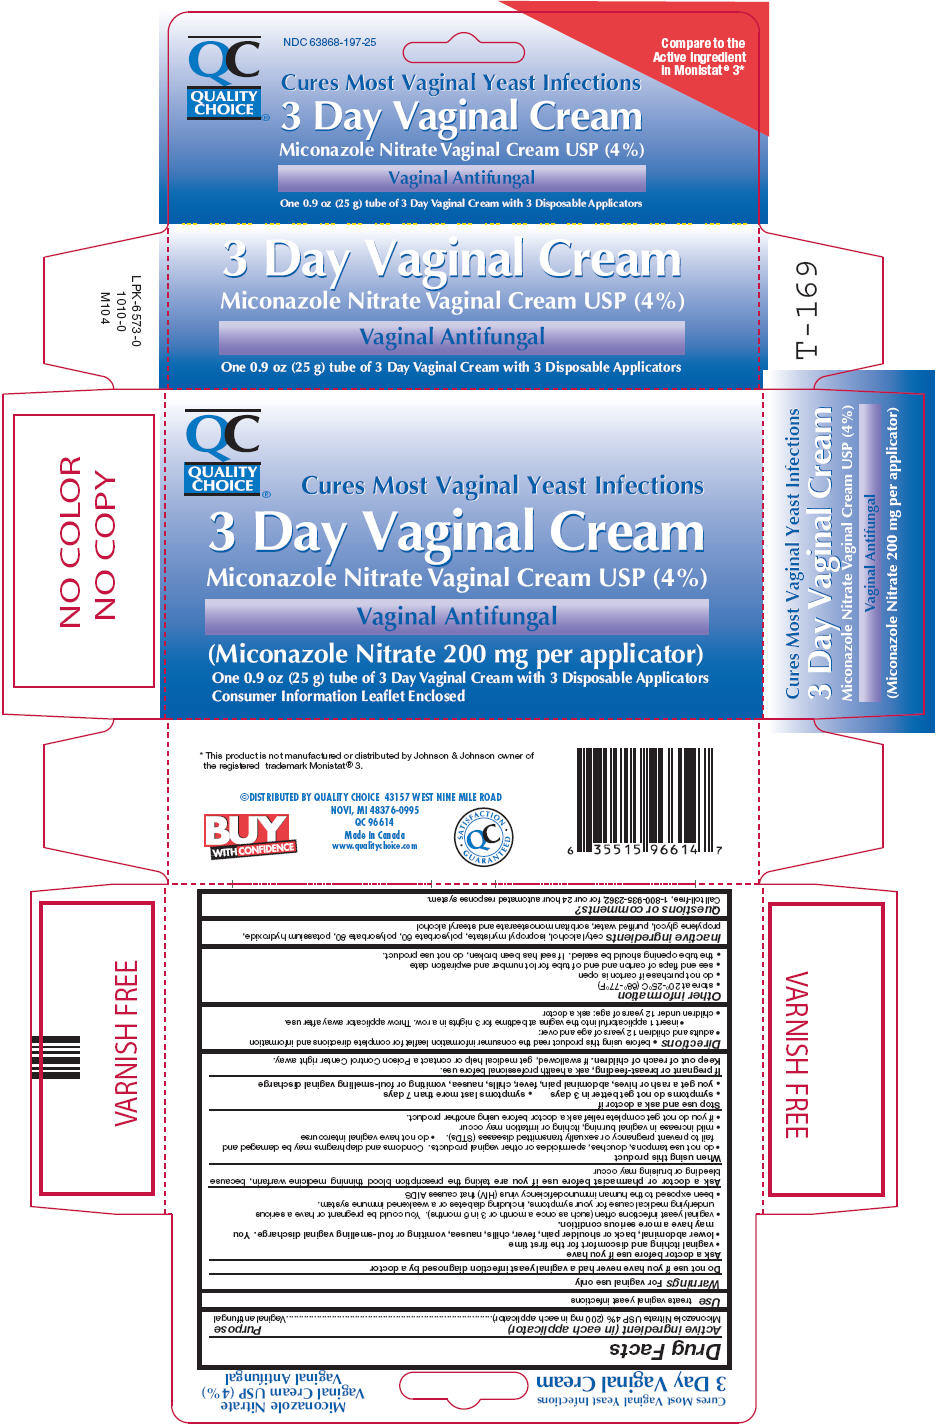 Quality Choice 3 Day Vaginal (Miconazole Nitrate) Cream [Chain Drug Marketing Association]